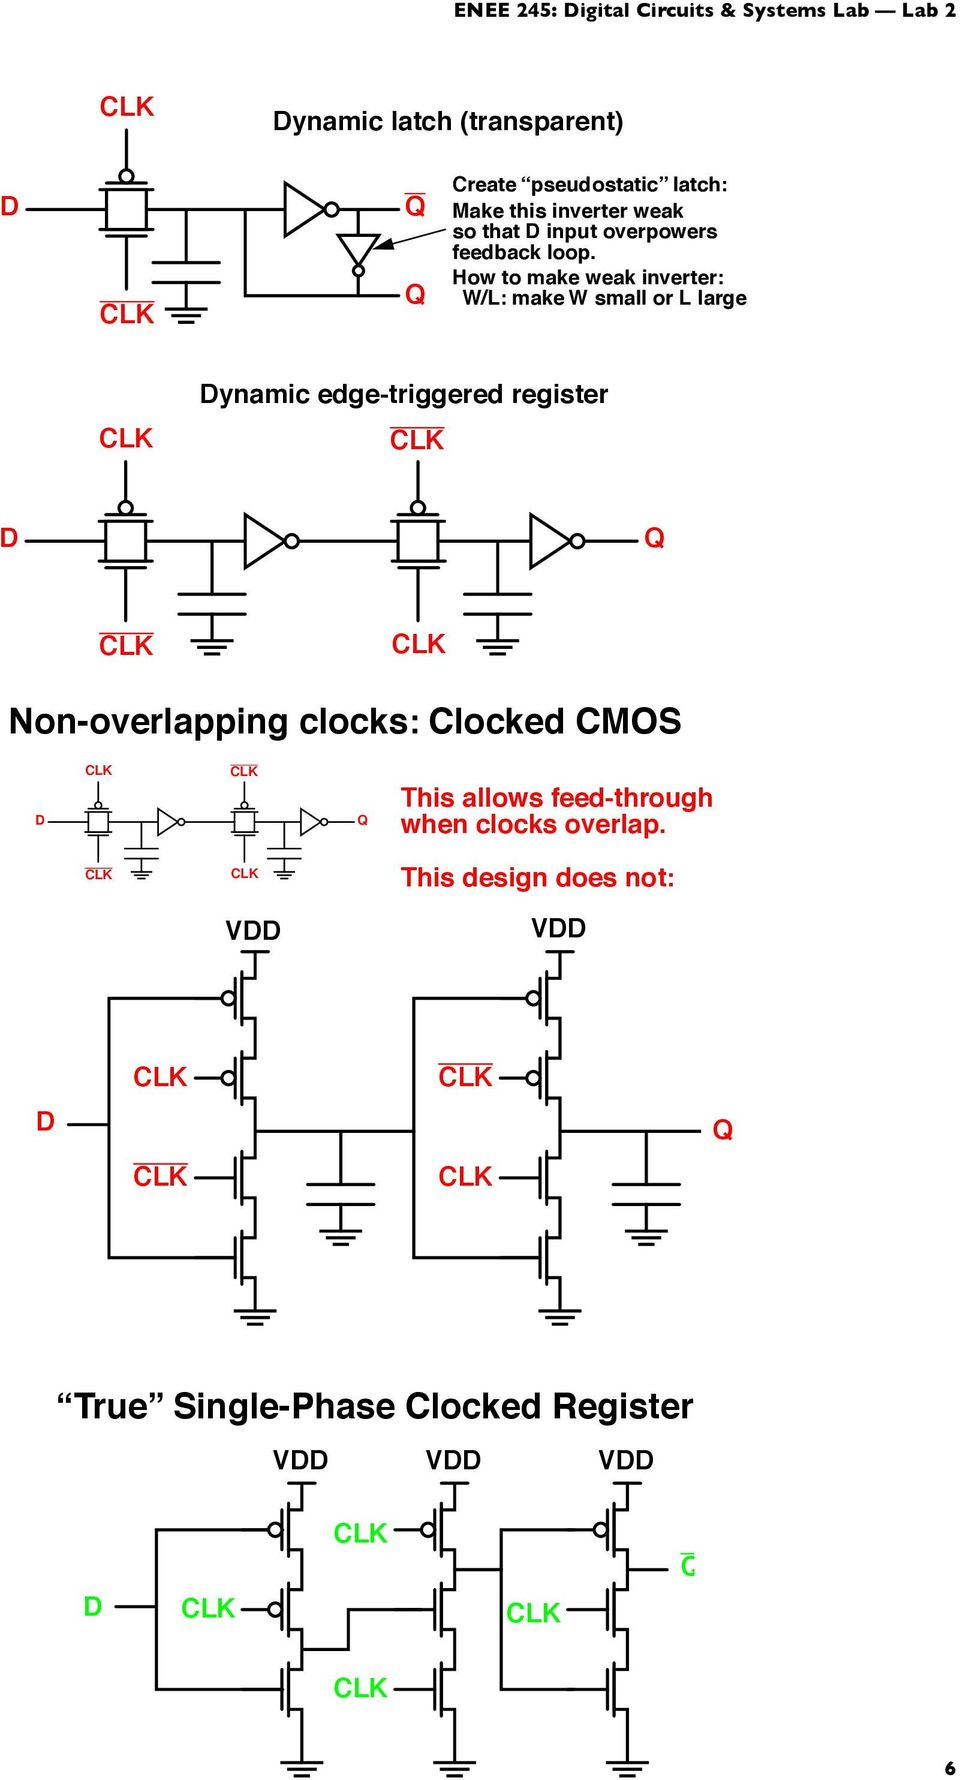 Sequential Logic Clocks Registers Etc Pdf D Latch Diagram This Inverter Weak So That Input Overpowers Feedback Loop